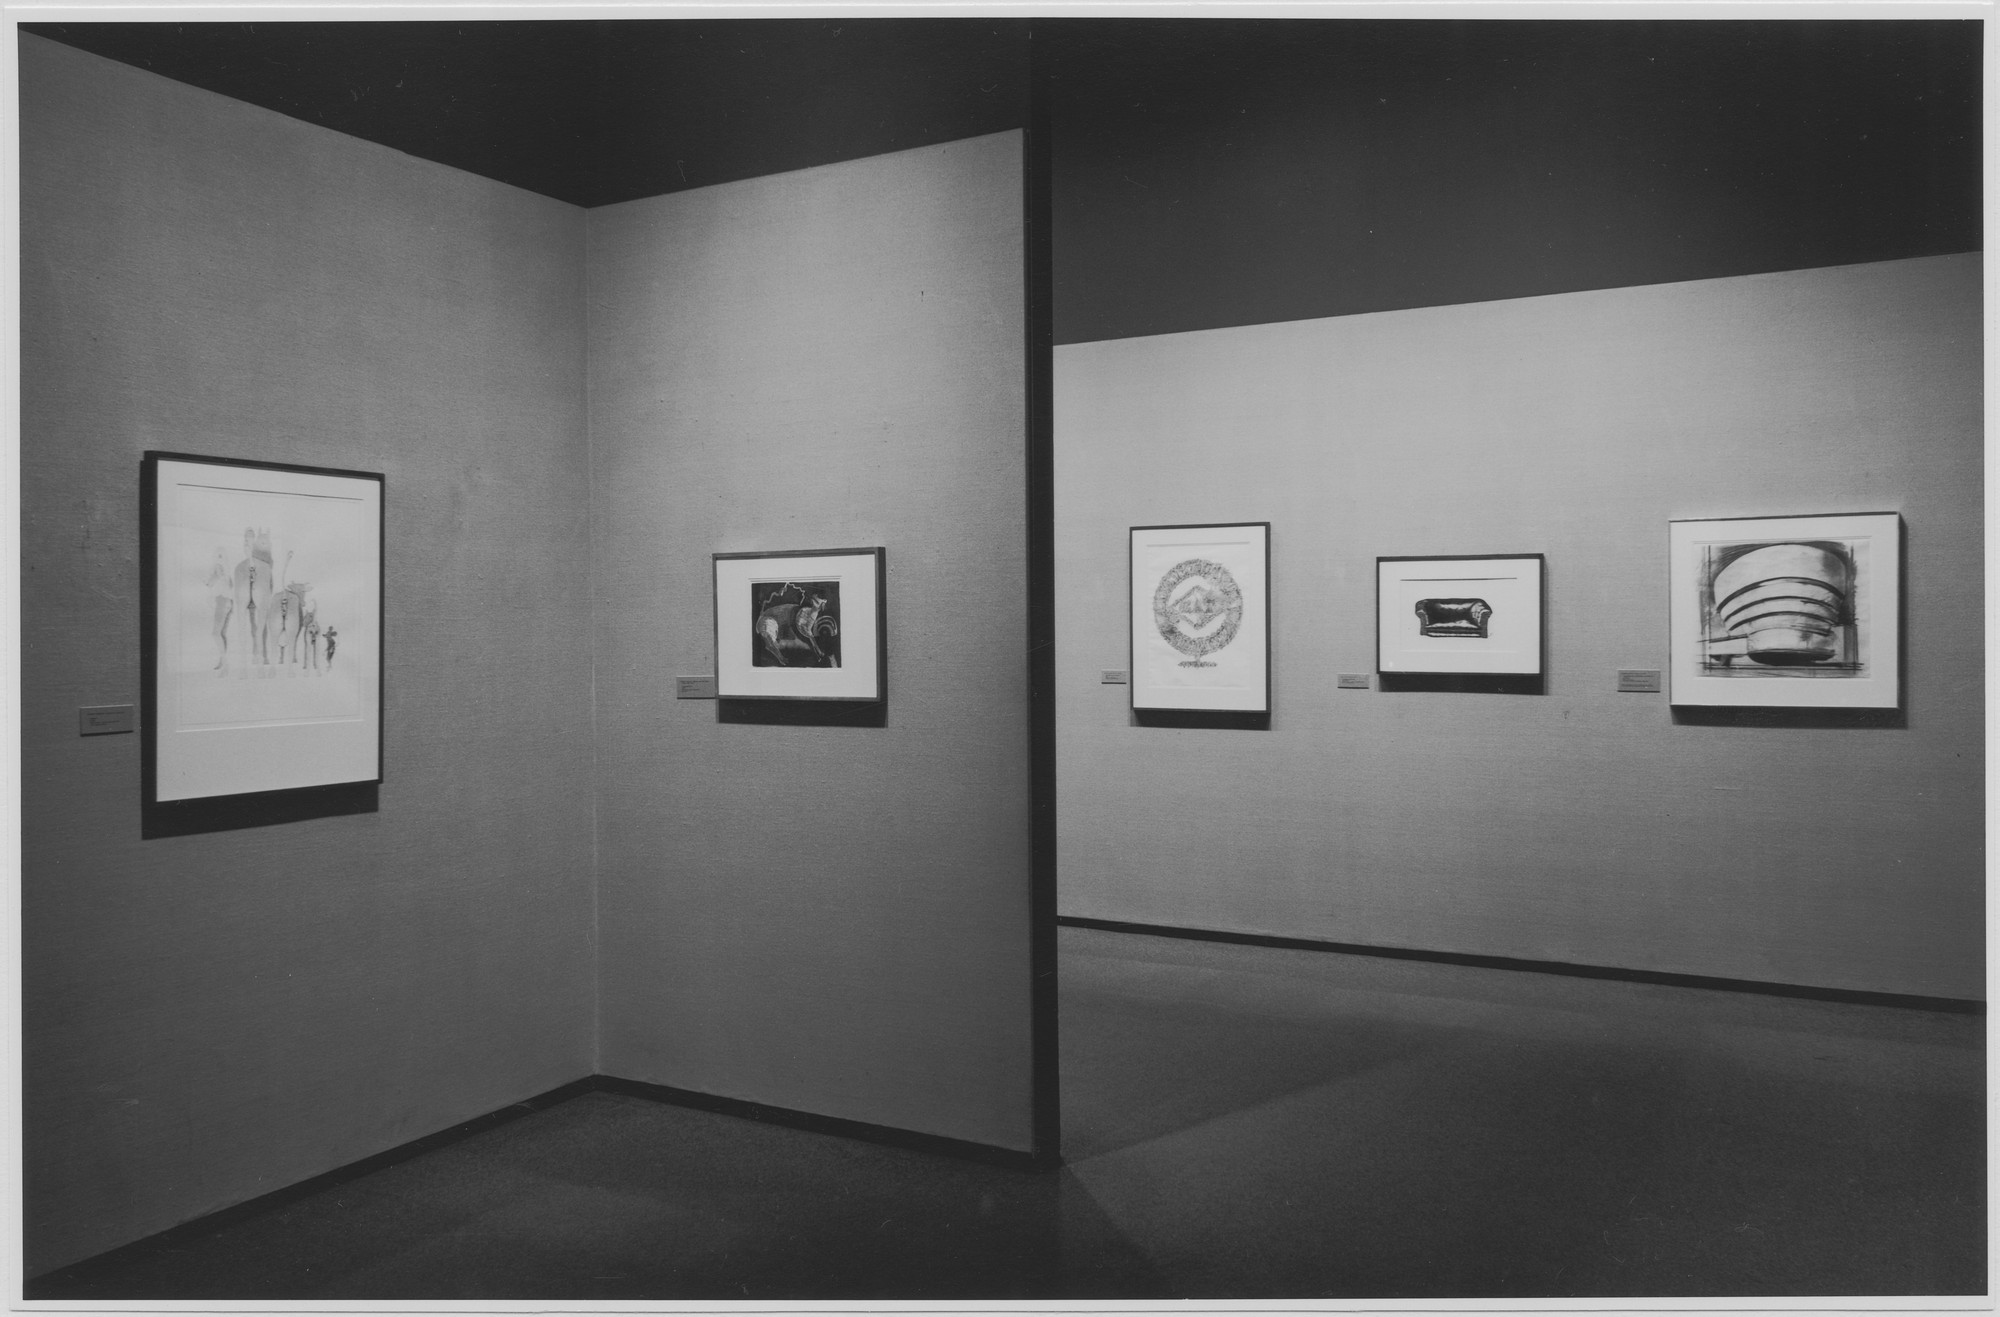 "Installation view of the exhibition, ""A Selection of Drawings and Watercolors from Museum Collection."" May 11, 1971–October 19, 1971. Photographic Archive. The Museum of Modern Art Archives, New York. IN965.1. Photograph by James Mathews."